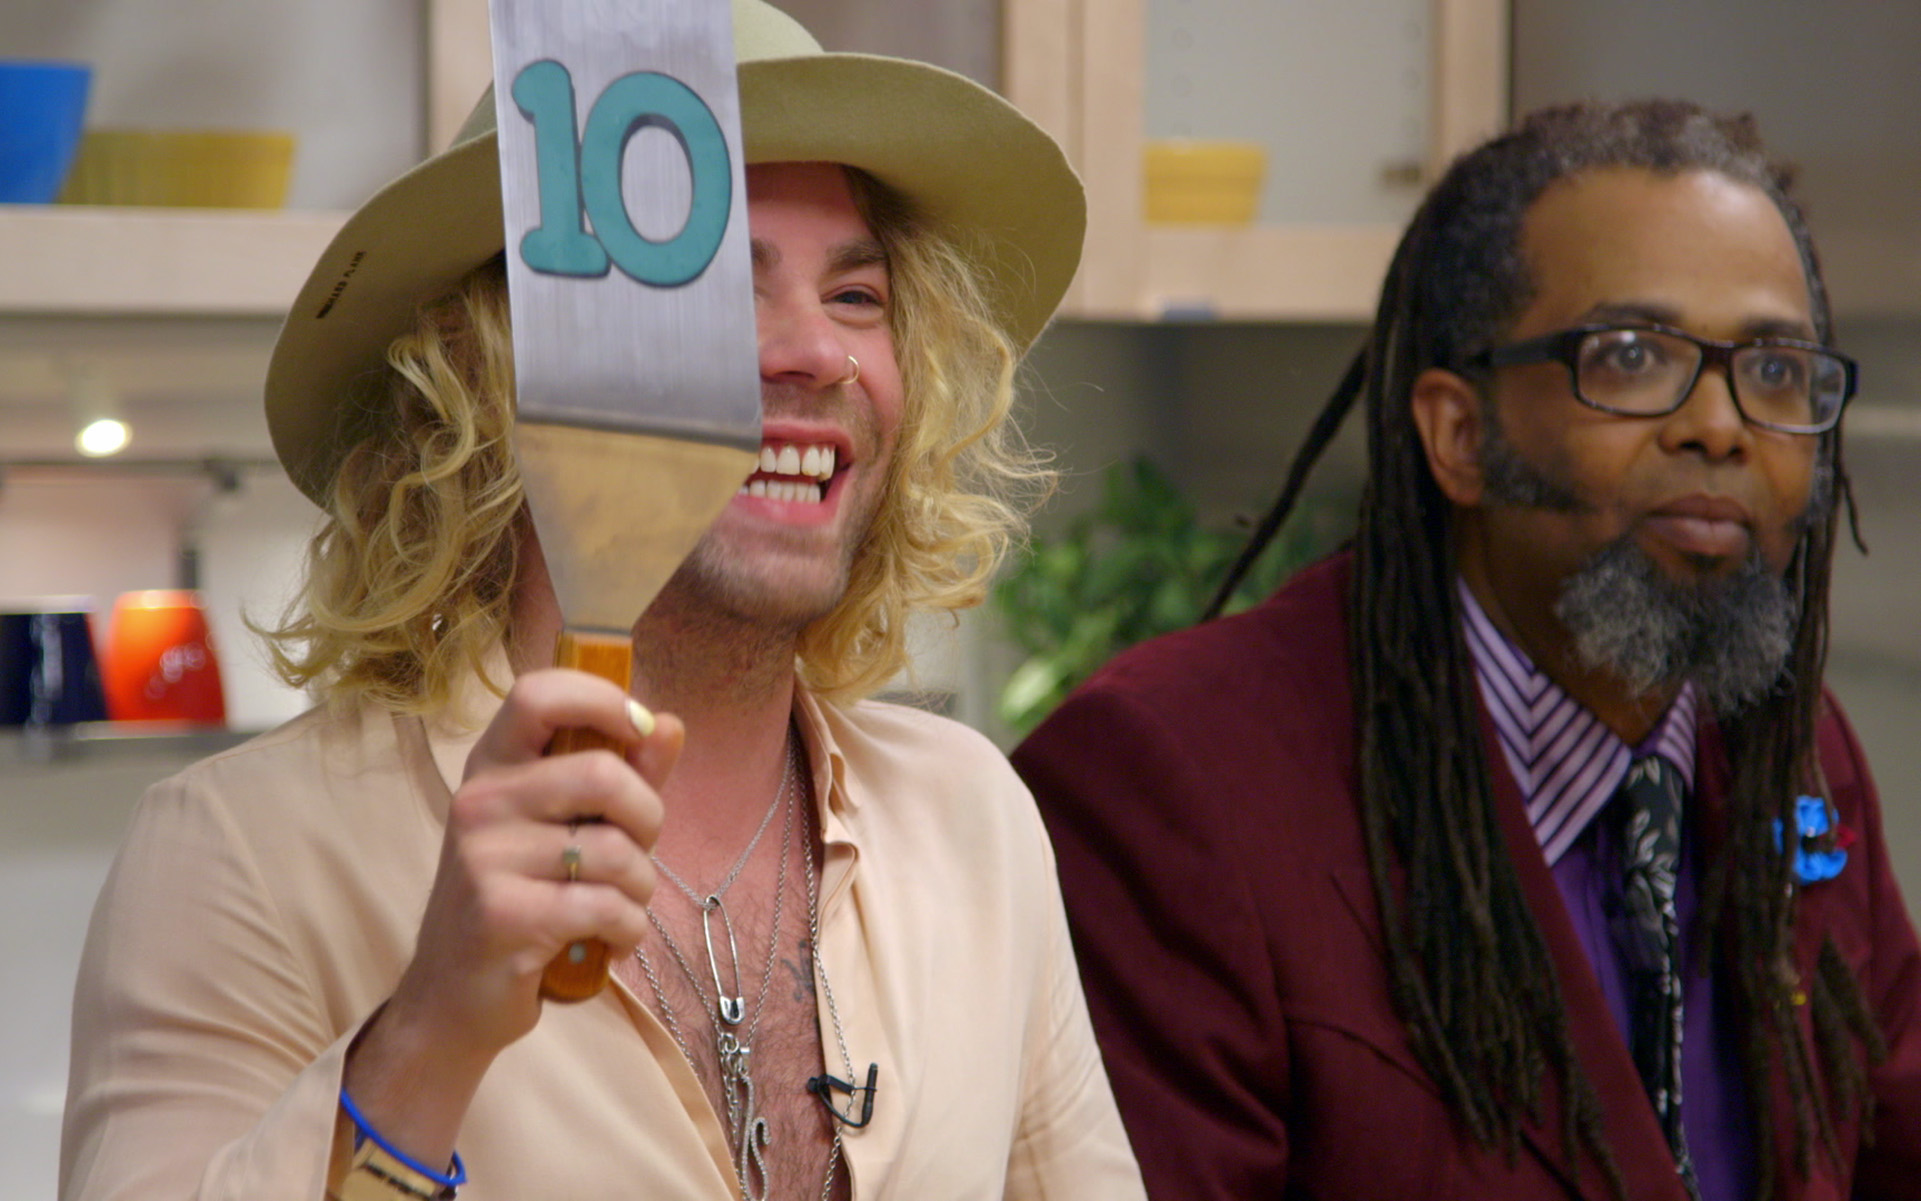 Rapper Mod Sun rates a cannabis meal on 'Cooking on High'. (Netflix)